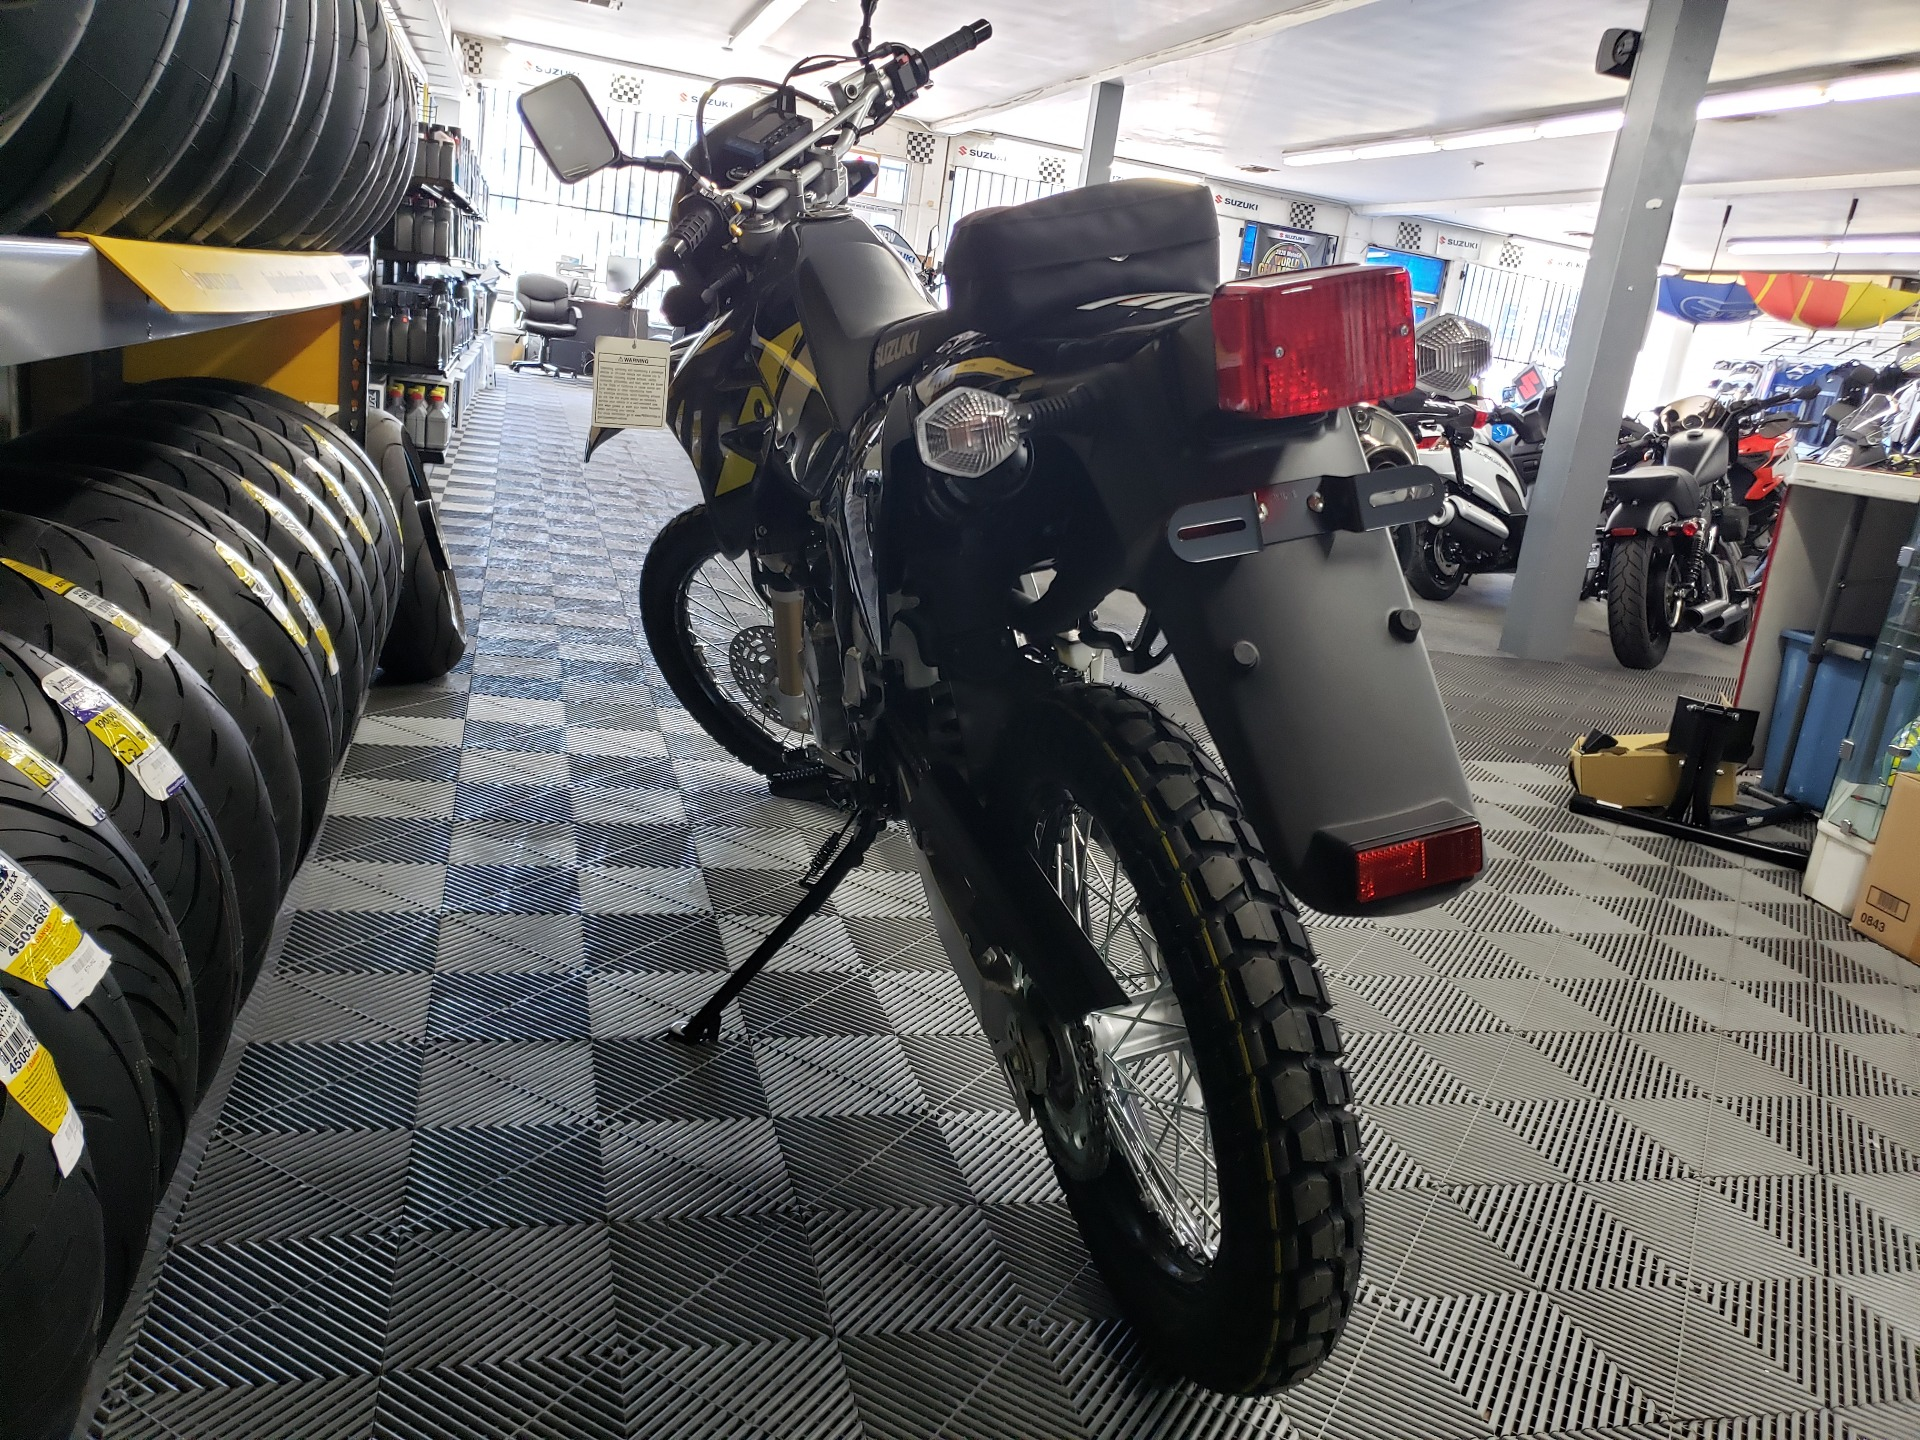 2021 Suzuki DR-Z400S in Van Nuys, California - Photo 4